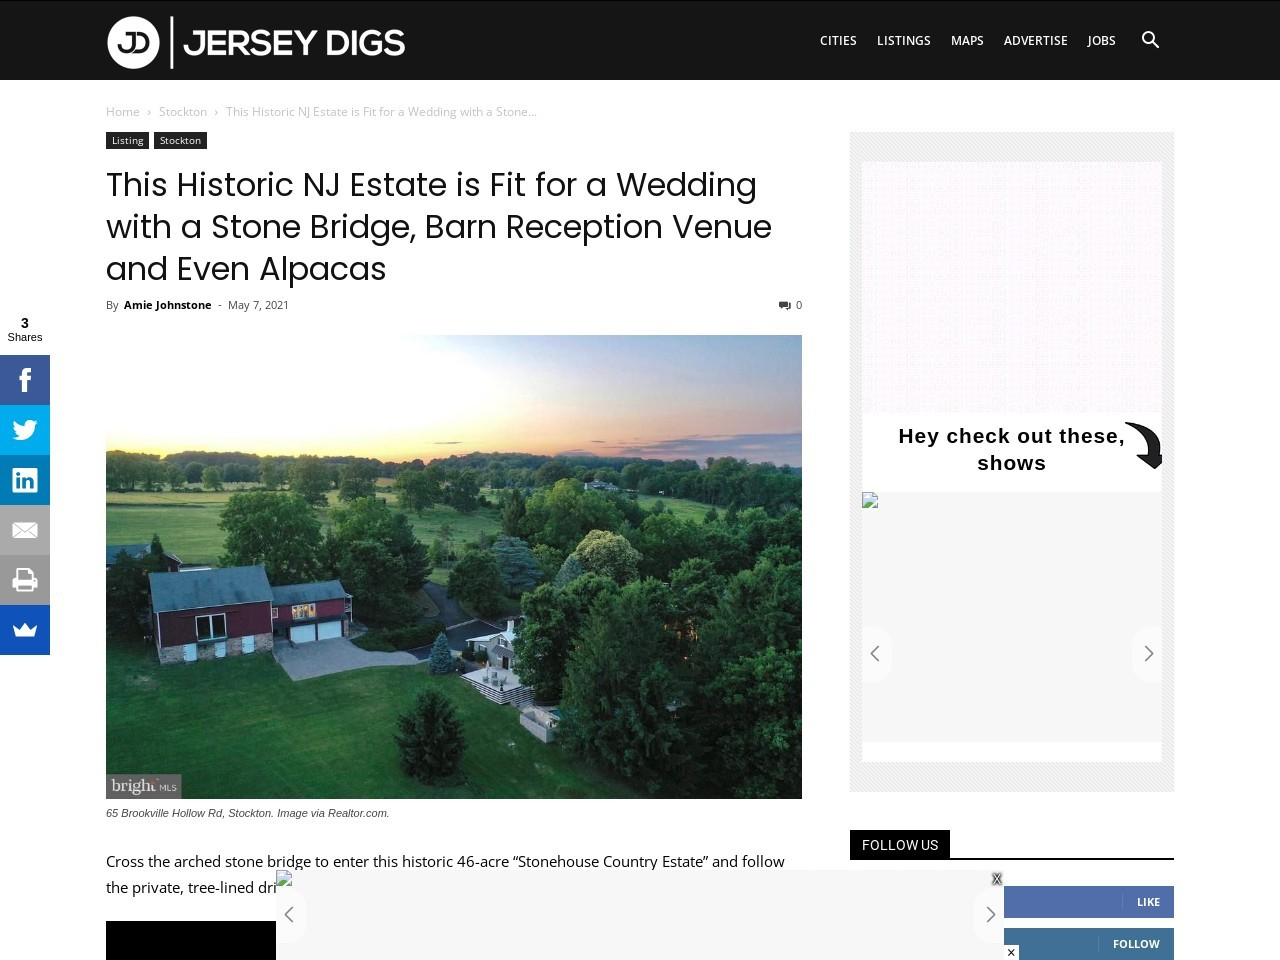 This Historic NJ Estate is Fit for a Wedding with a Stone Bridge, Barn Reception Venue and Even Alpacas